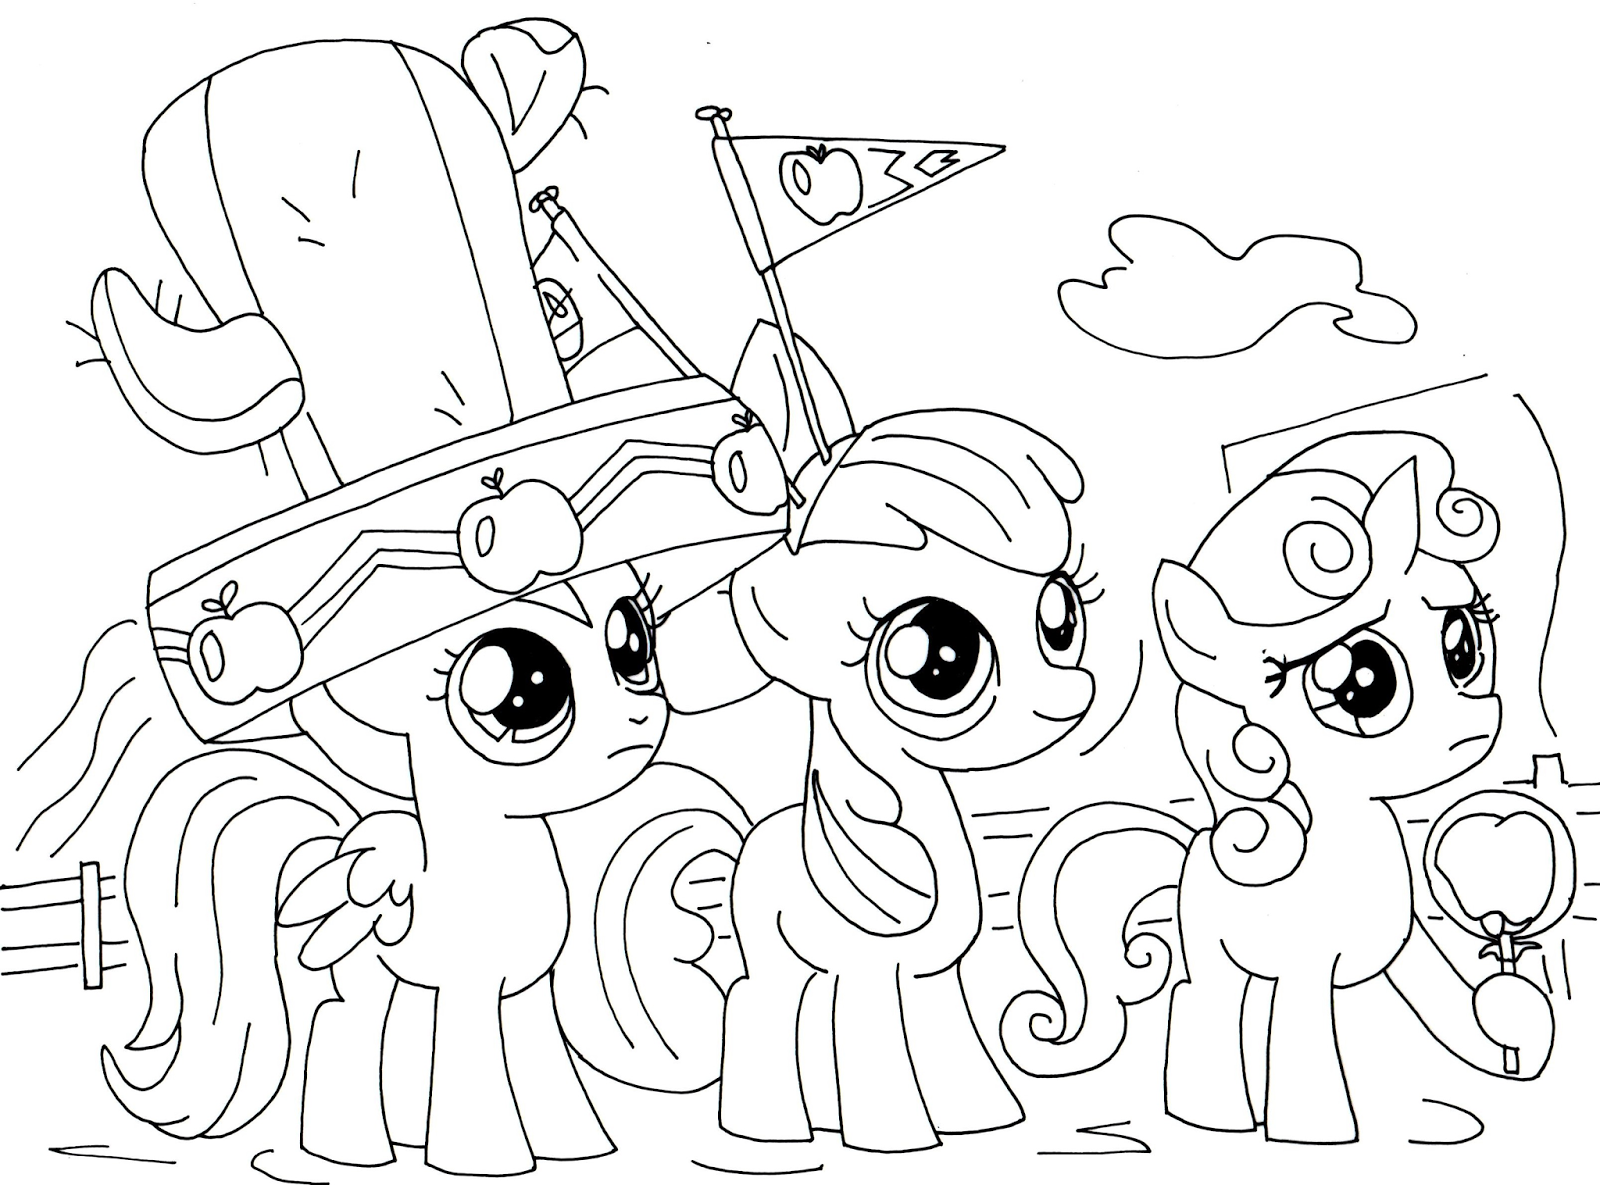 ... Crusaders Coloring Pages Free printable my little pony coloring pages